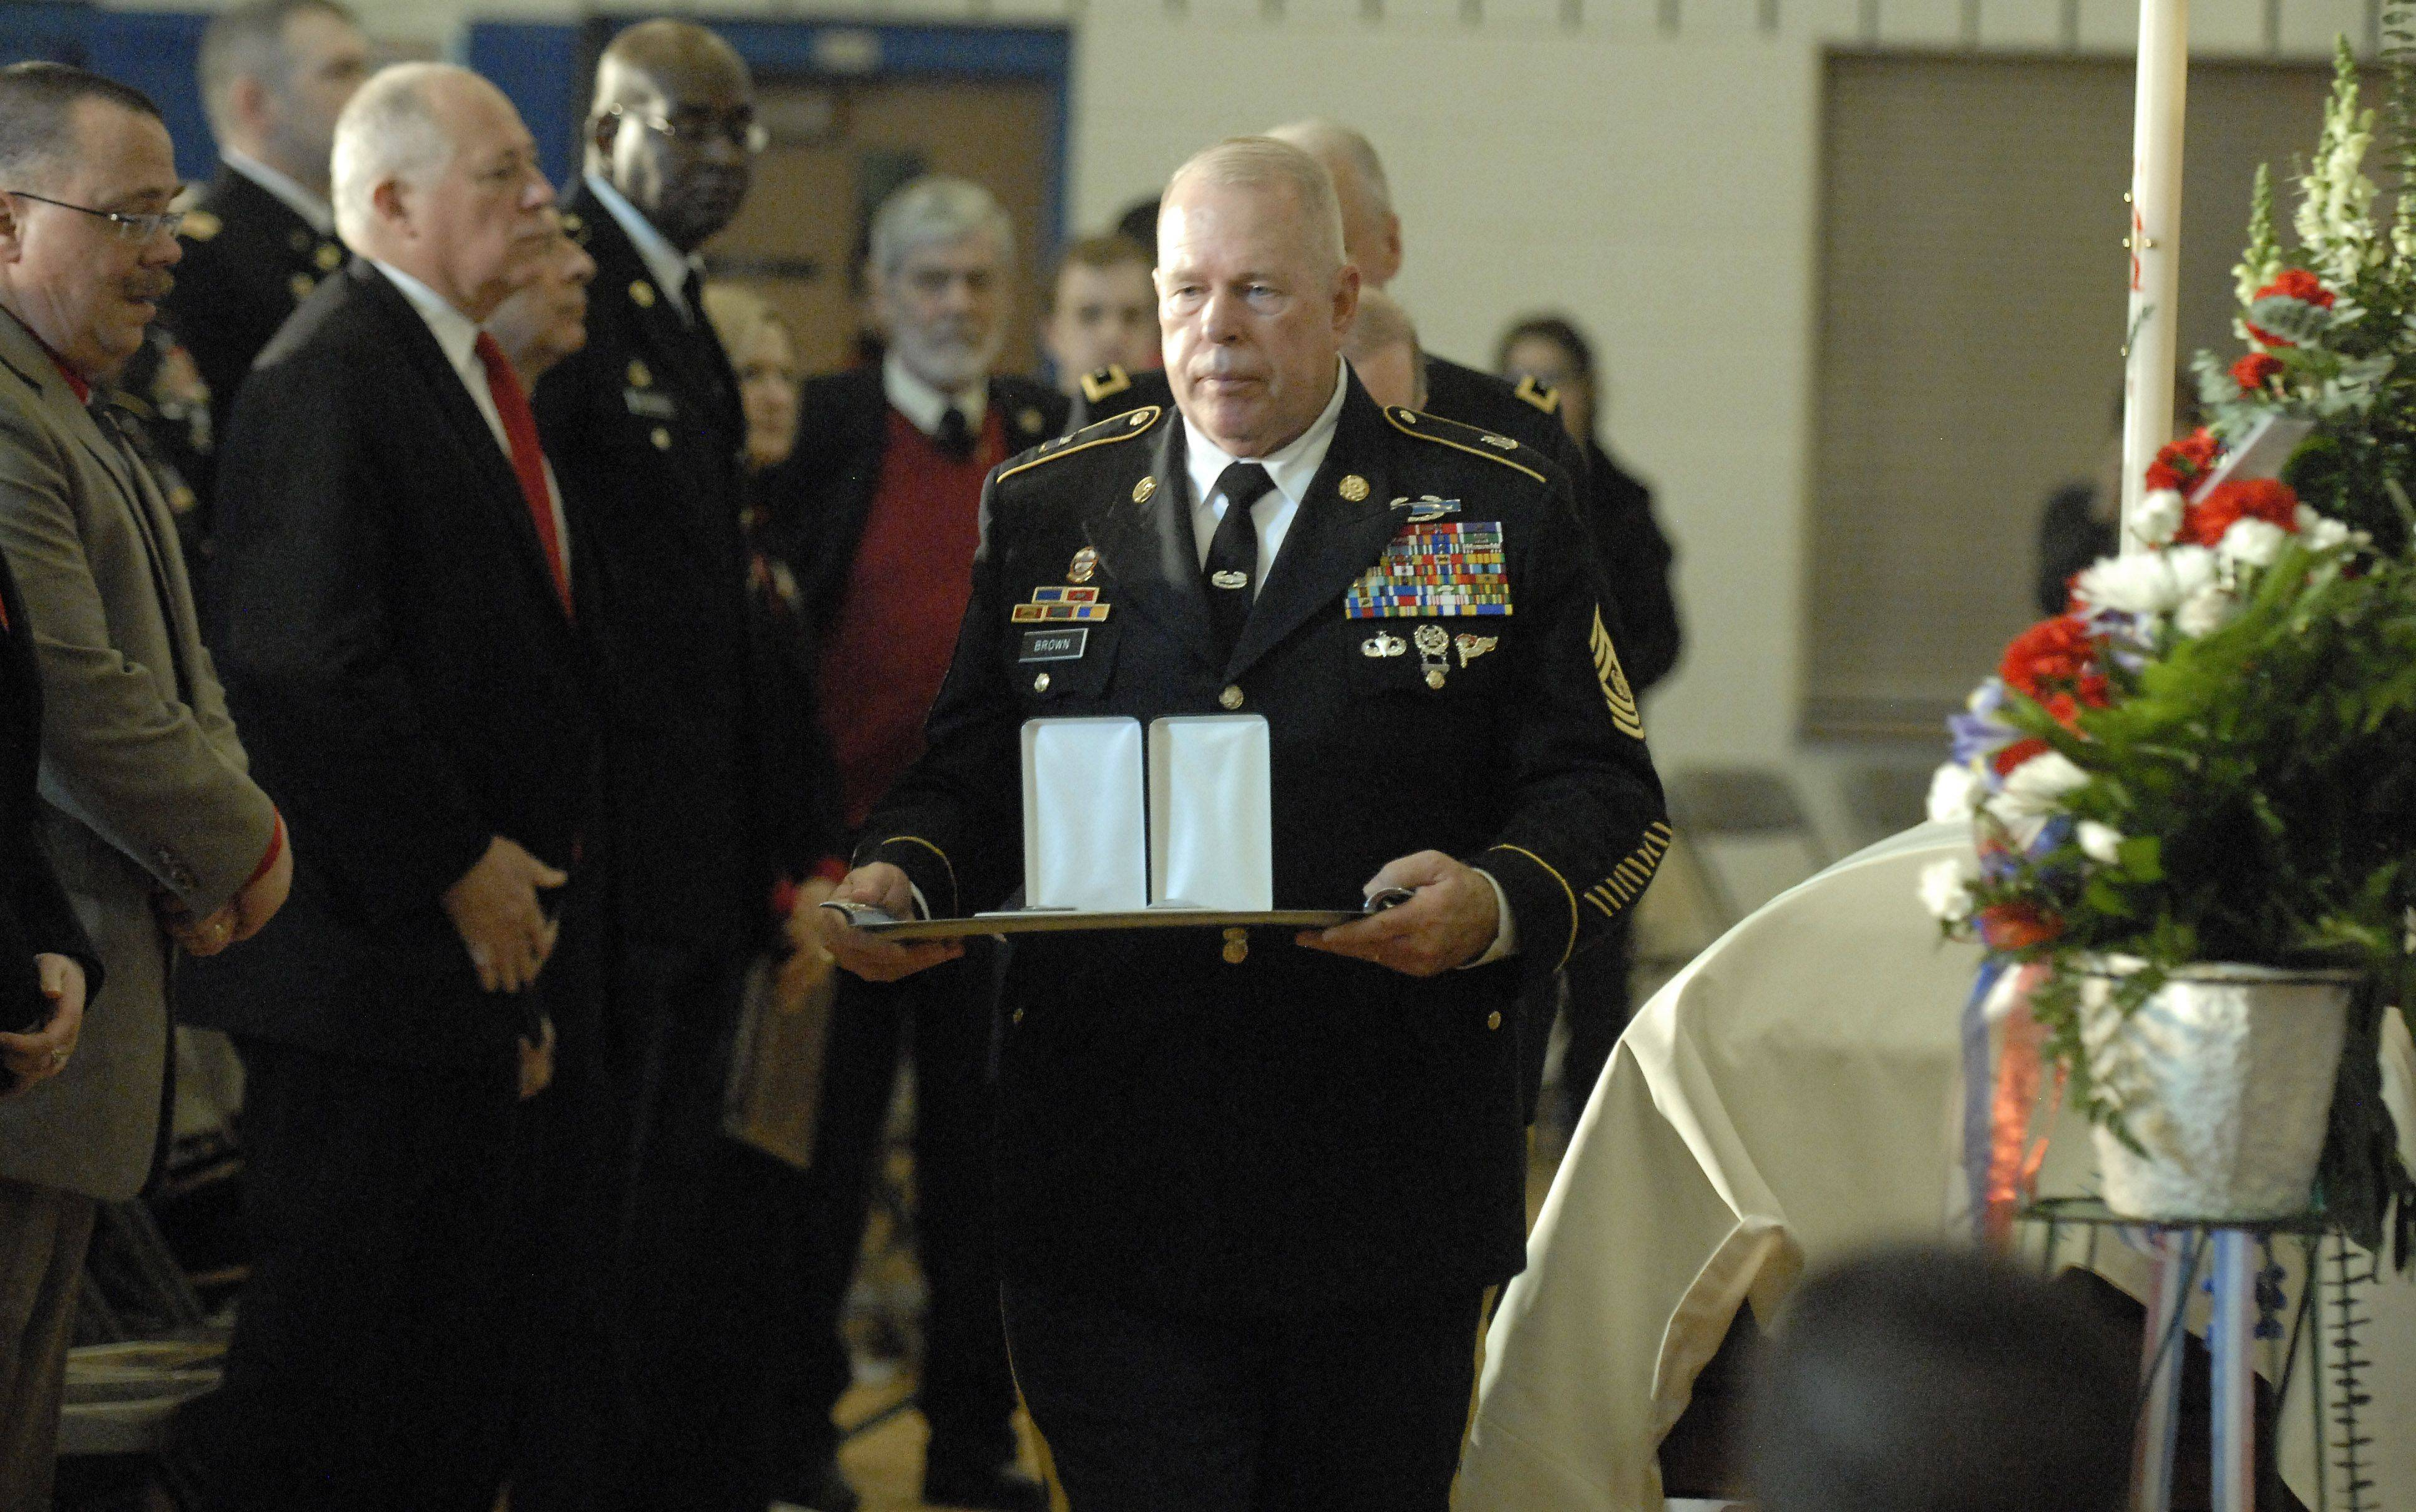 A Purple Heart and Bronze Star are brought to be presented to the parents of Spc. Christopher A. Patterson, a member of the 713th Engineer Company of the Indiana National Guard, at his funeral in Batavia on Saturday, January 21.